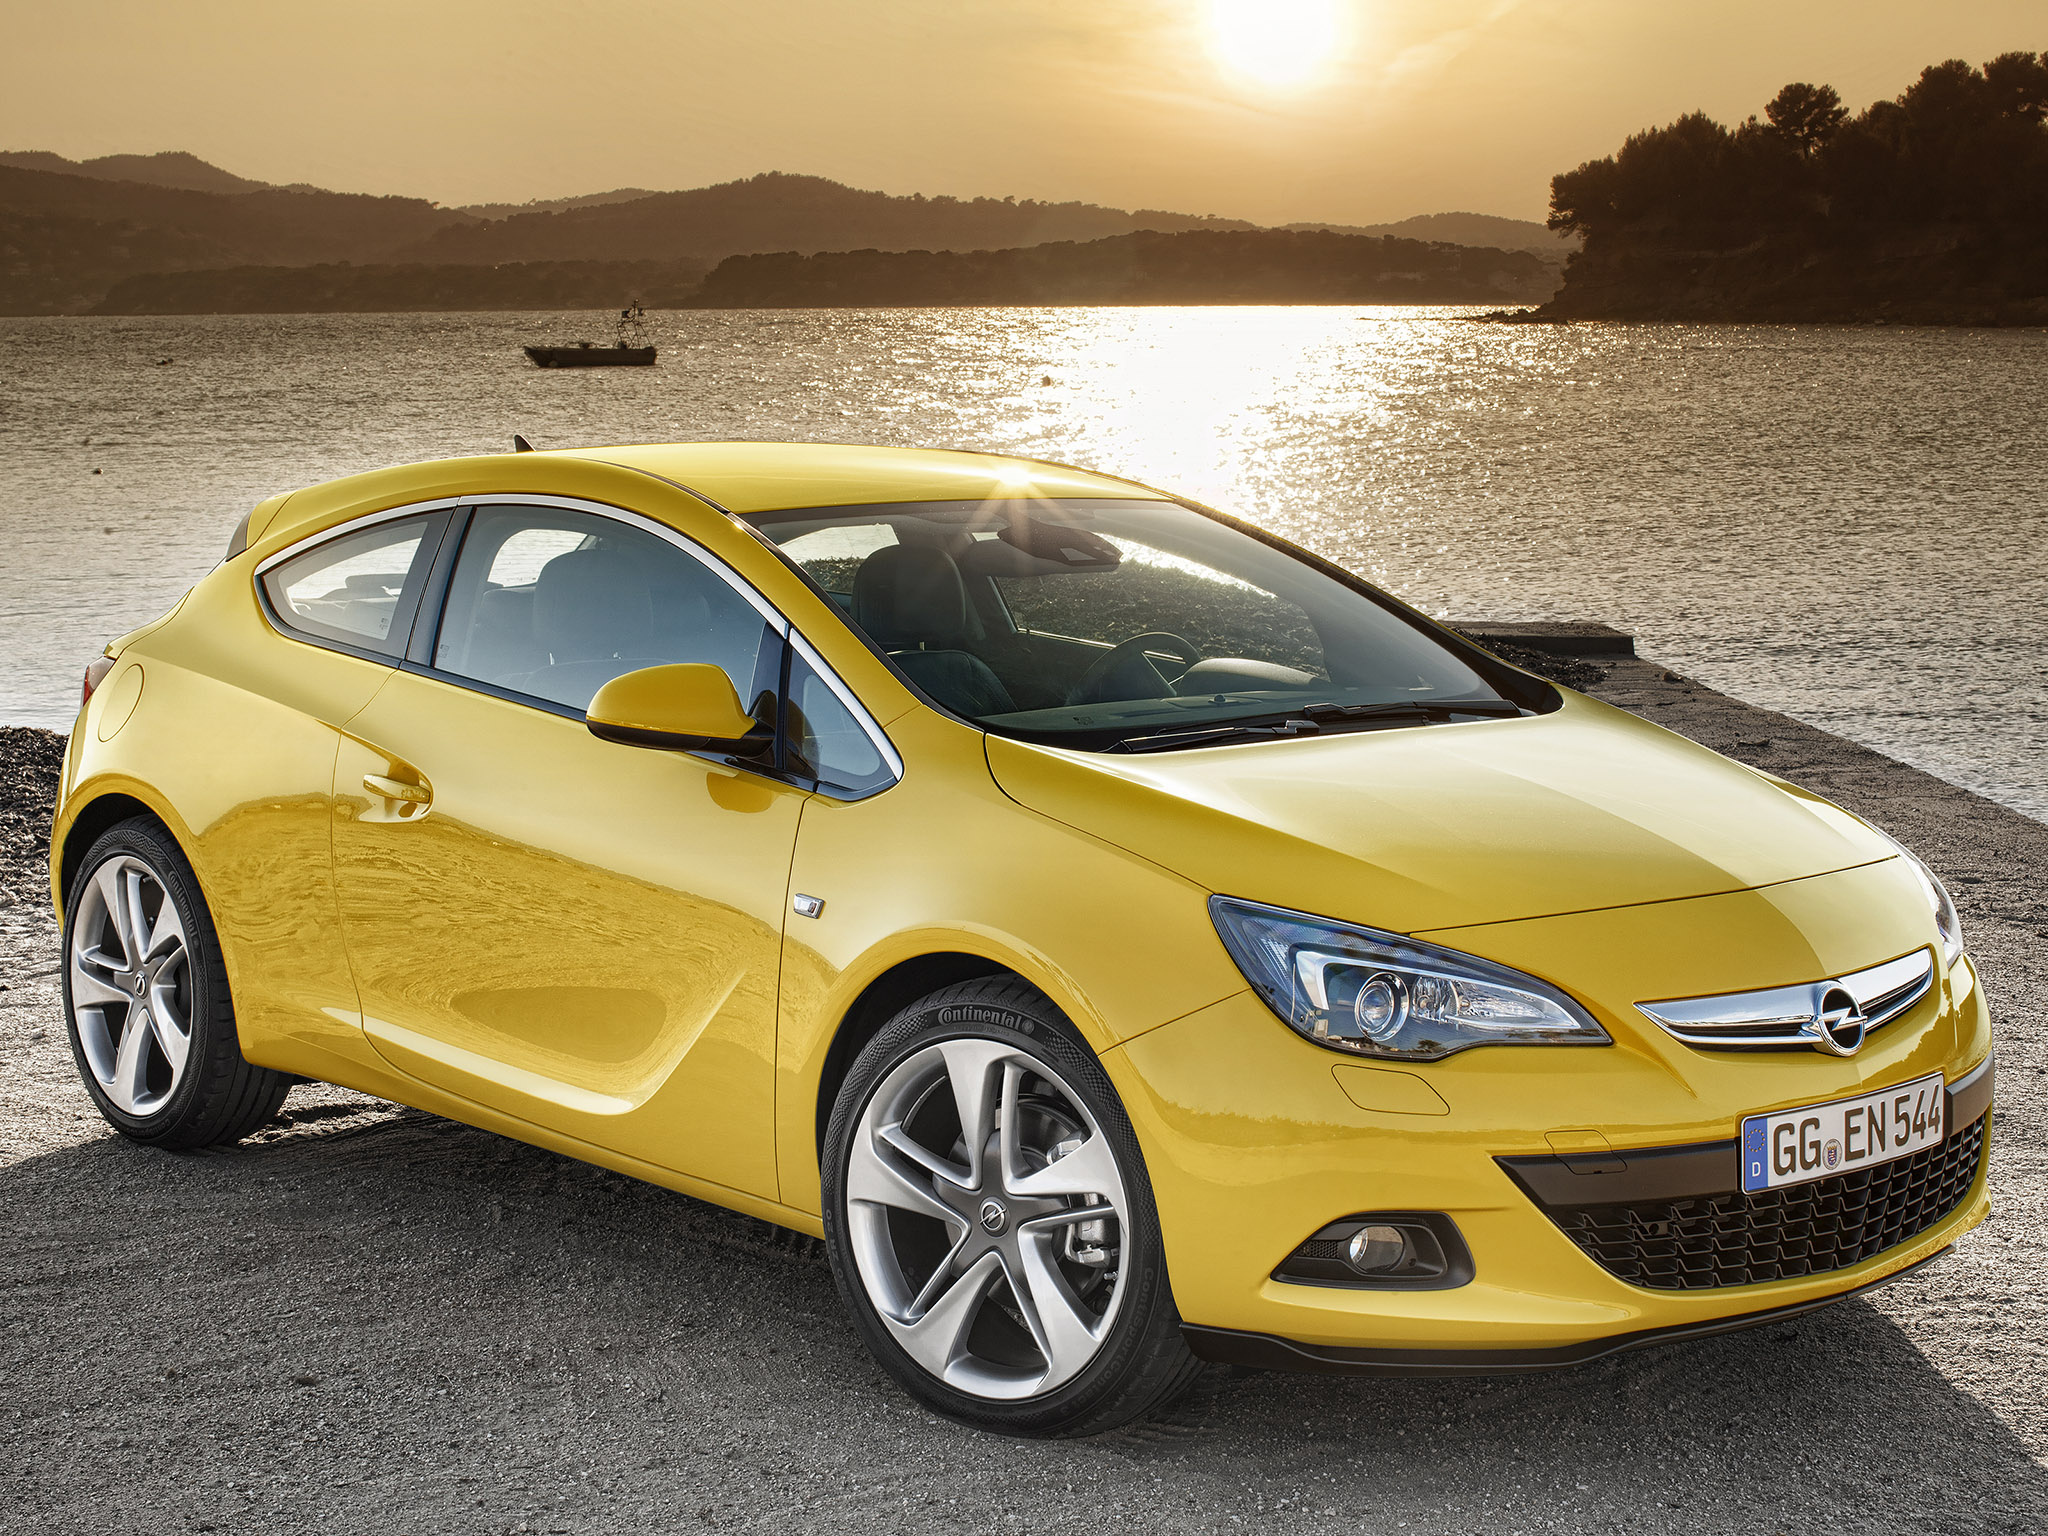 2011 opel astra j gtc pictures information and specs auto. Black Bedroom Furniture Sets. Home Design Ideas